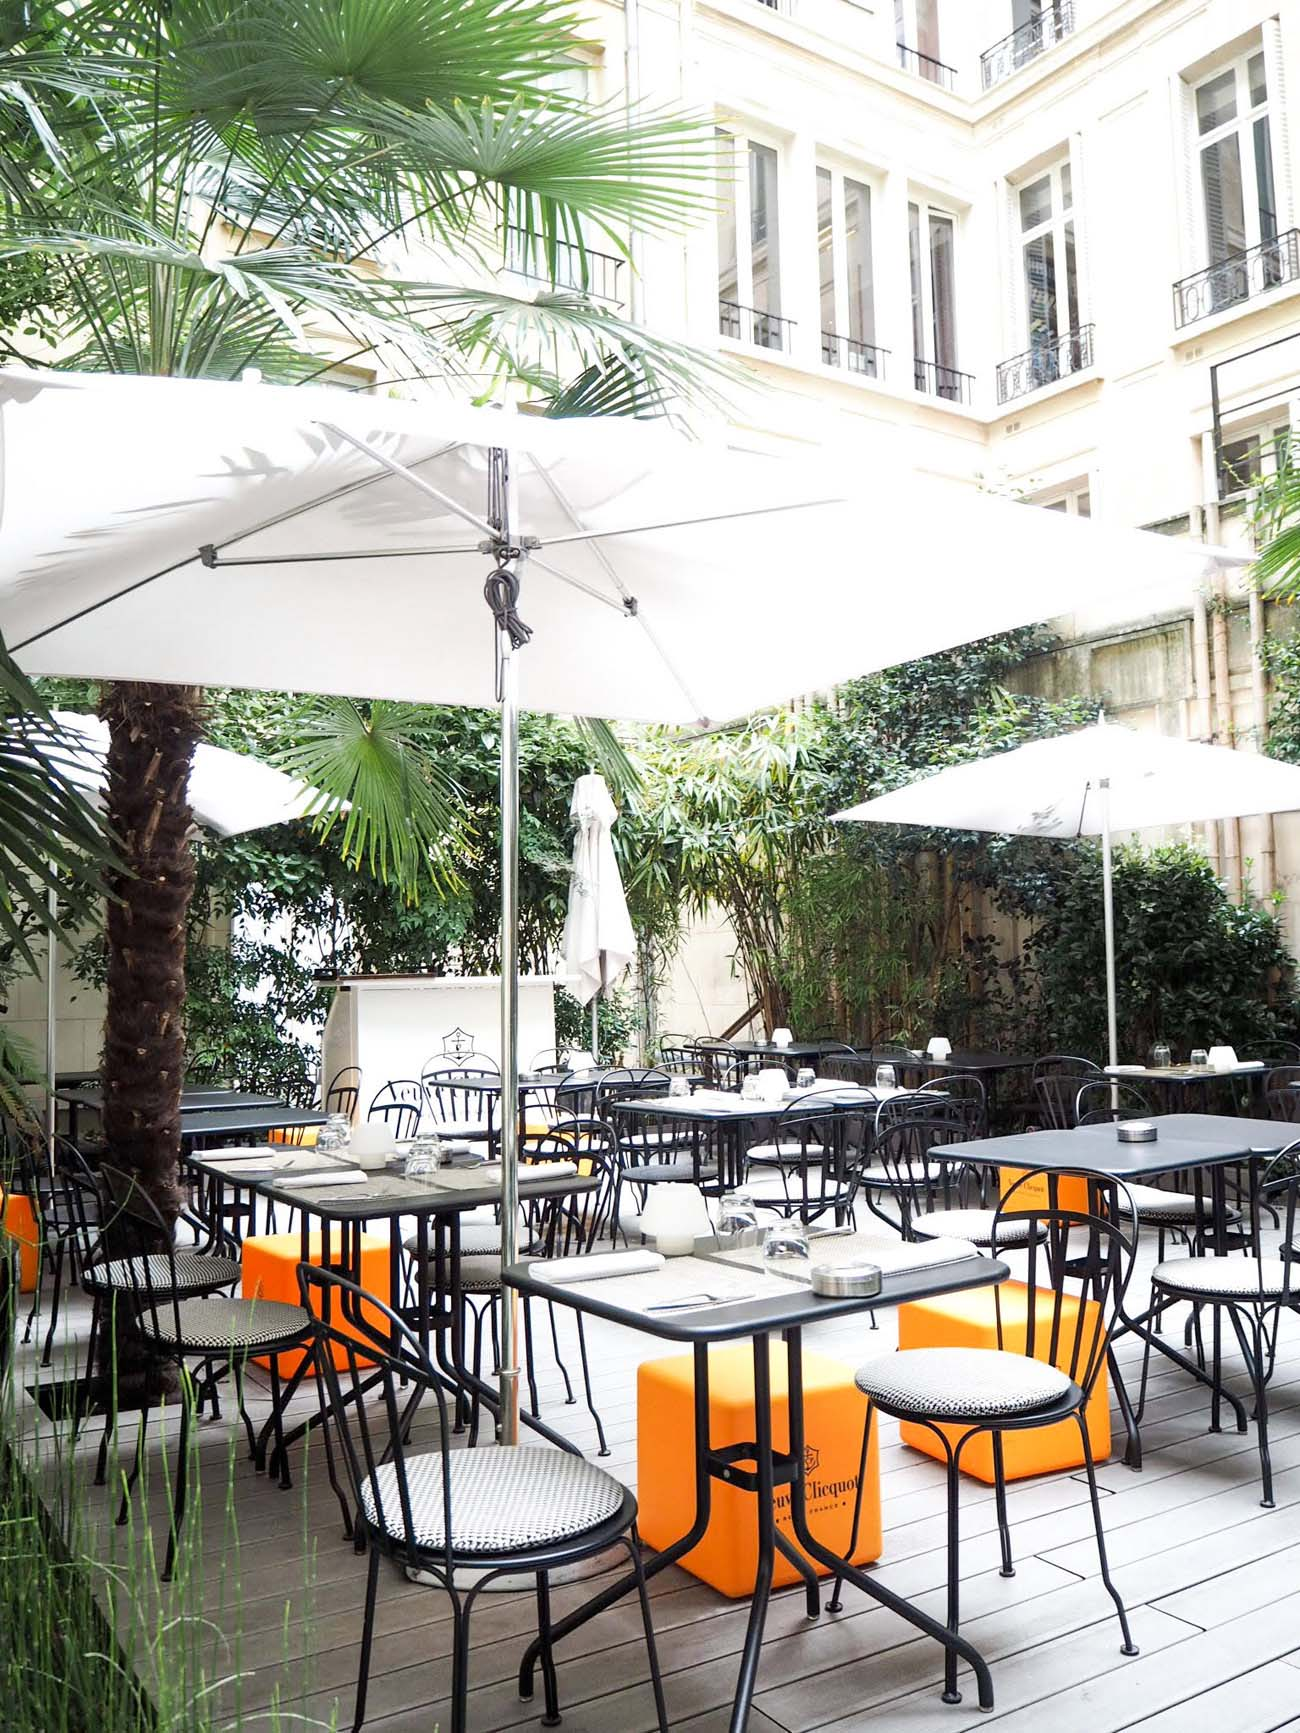 Sofitel, Sofitel Paris Le Faubourg, hôtel de luxe, STAY, restaurant, Paris, Accor Hôtels